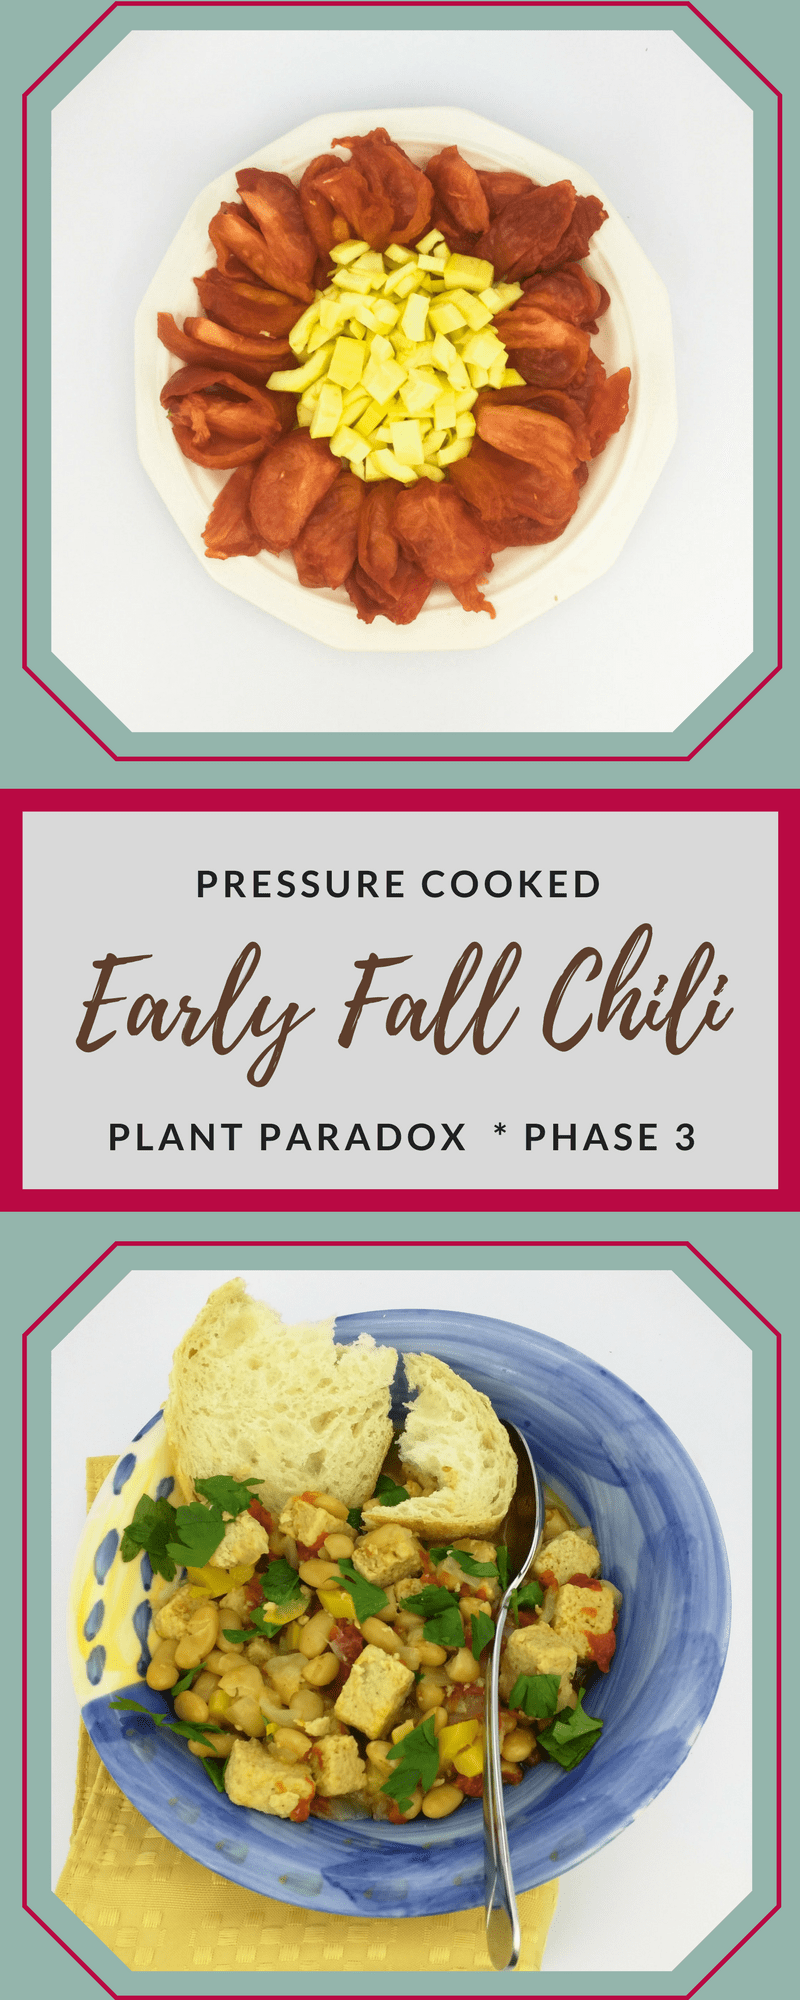 Make pressure cooked early fall chili lectin free with peeled and deseeded tomatoes and squash plus delicious chicken and white beans.